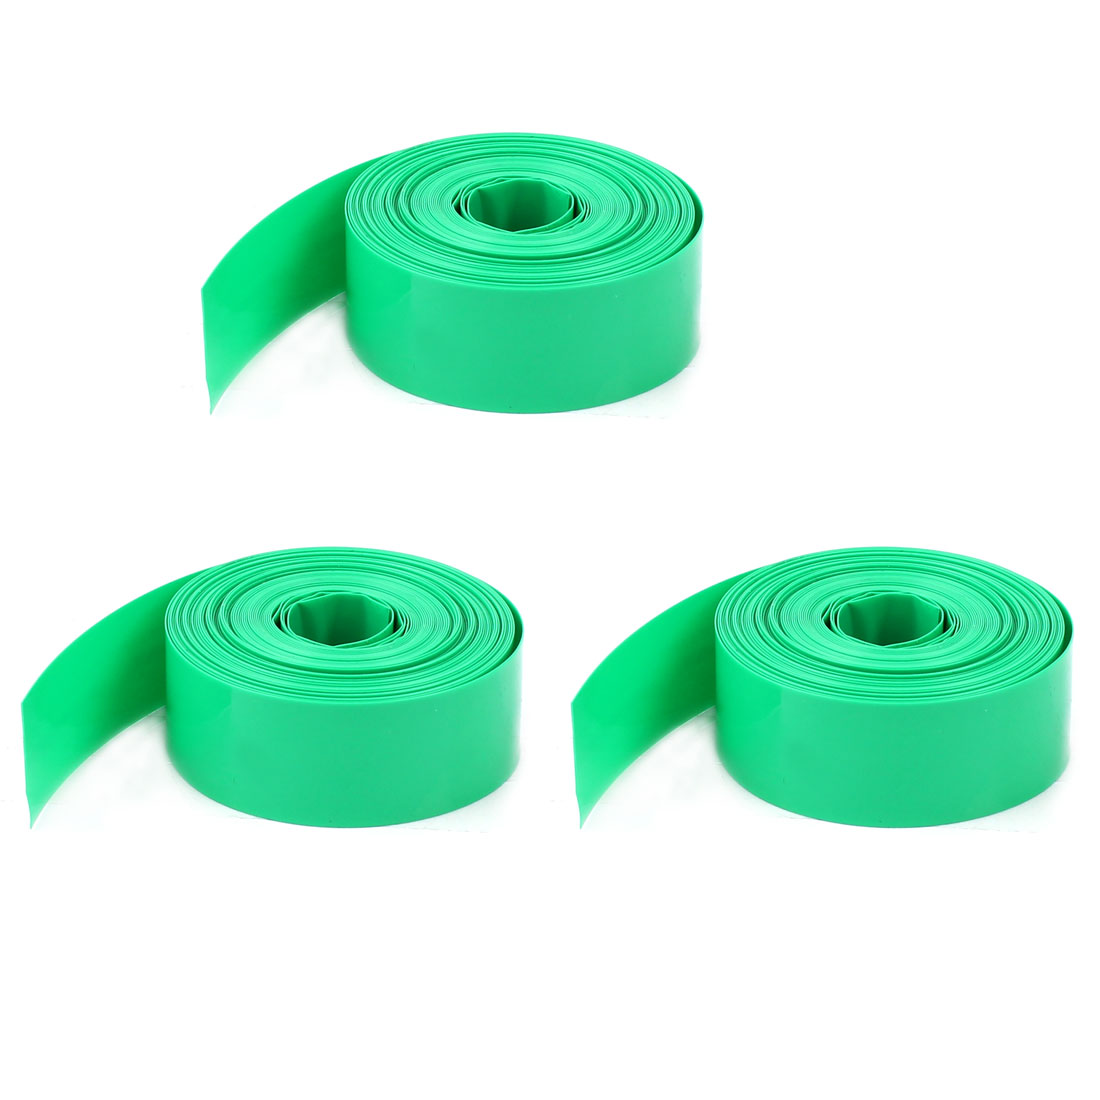 Unique Bargains 5Pcs 2 Meters 17mm Width PVC Heat Shrink Wrap Tube Green for 1 x AAA Battery